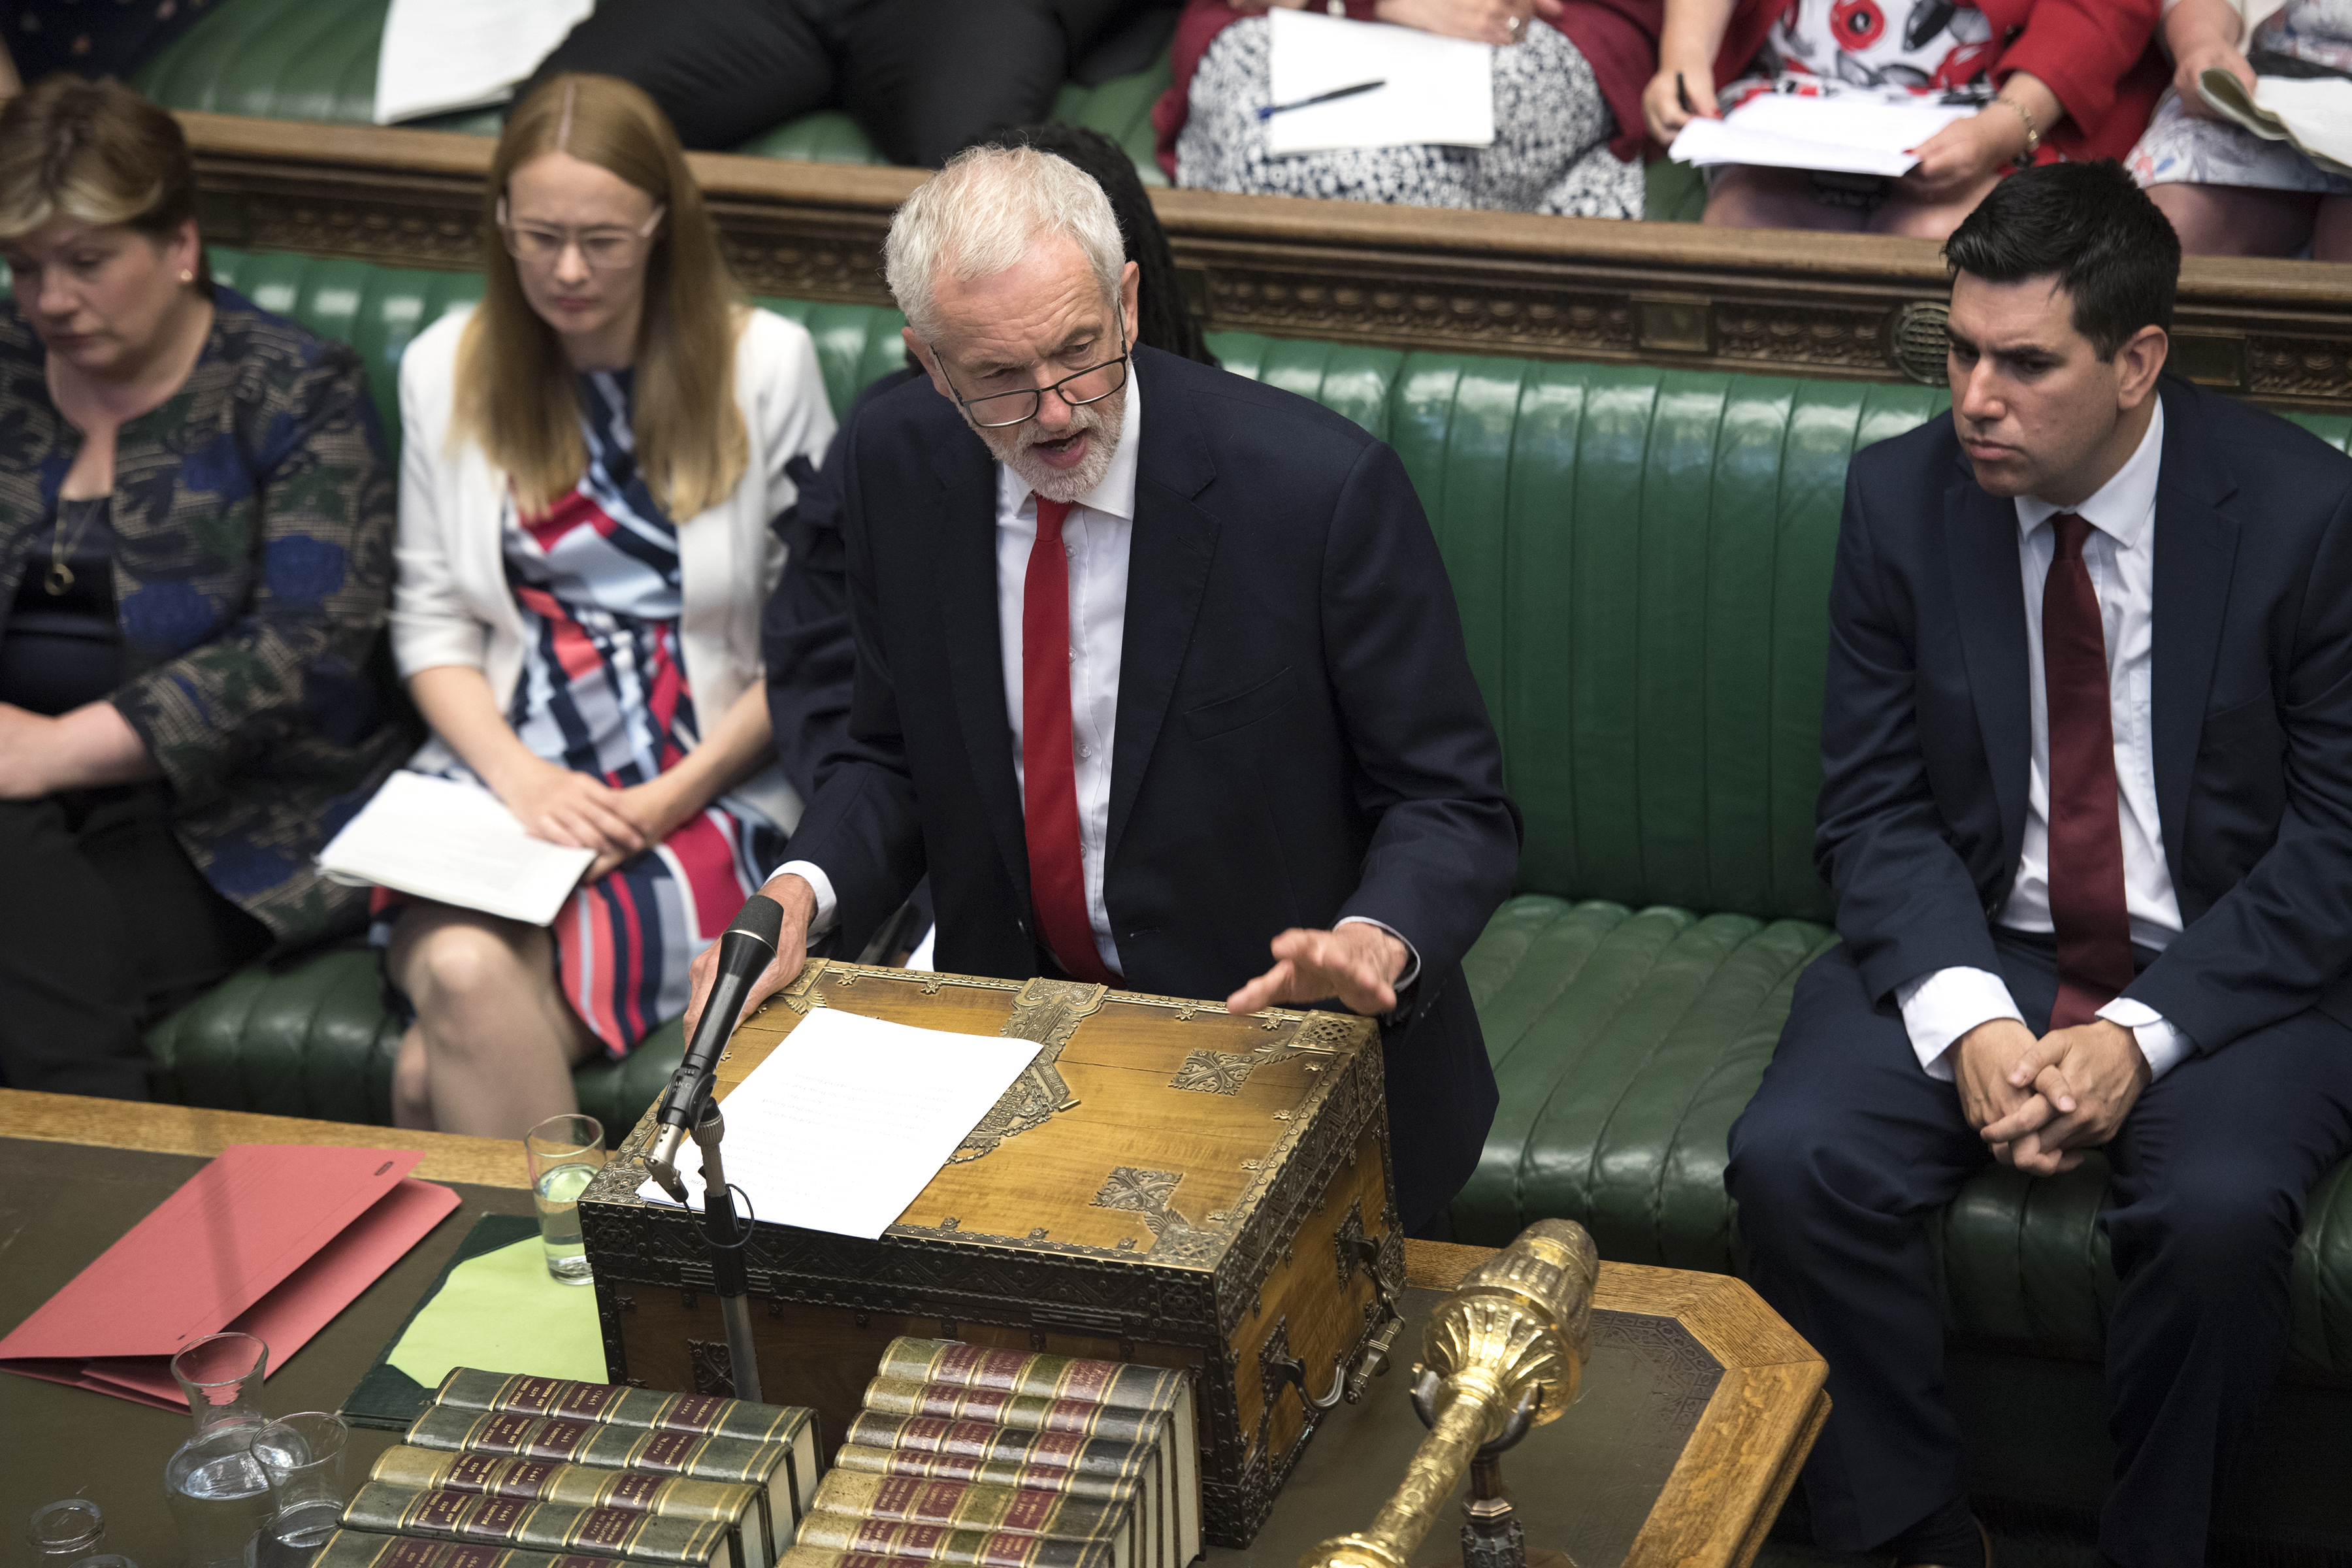 UK Labour Party in turmoil over new anti-Semitism claims